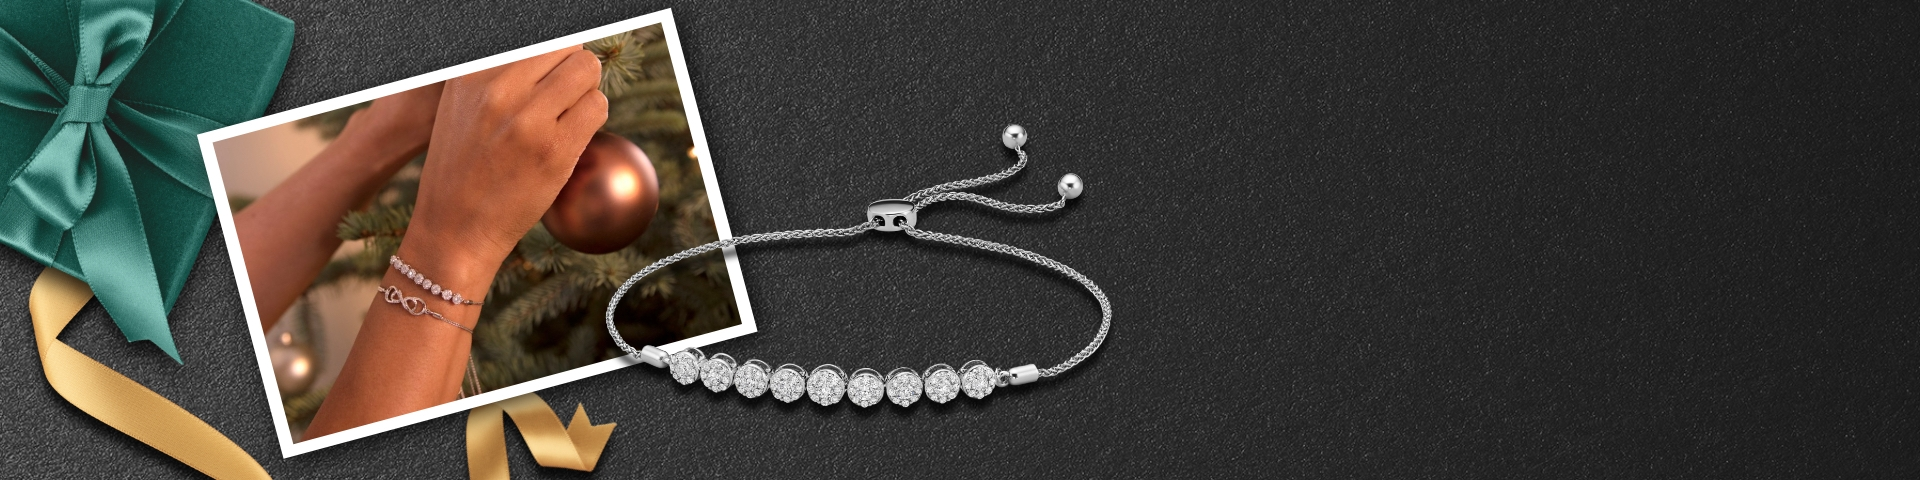 Image of a woman's wrist wearing two diamond bolo bracelets while putting an ornament on a Christmas tree.